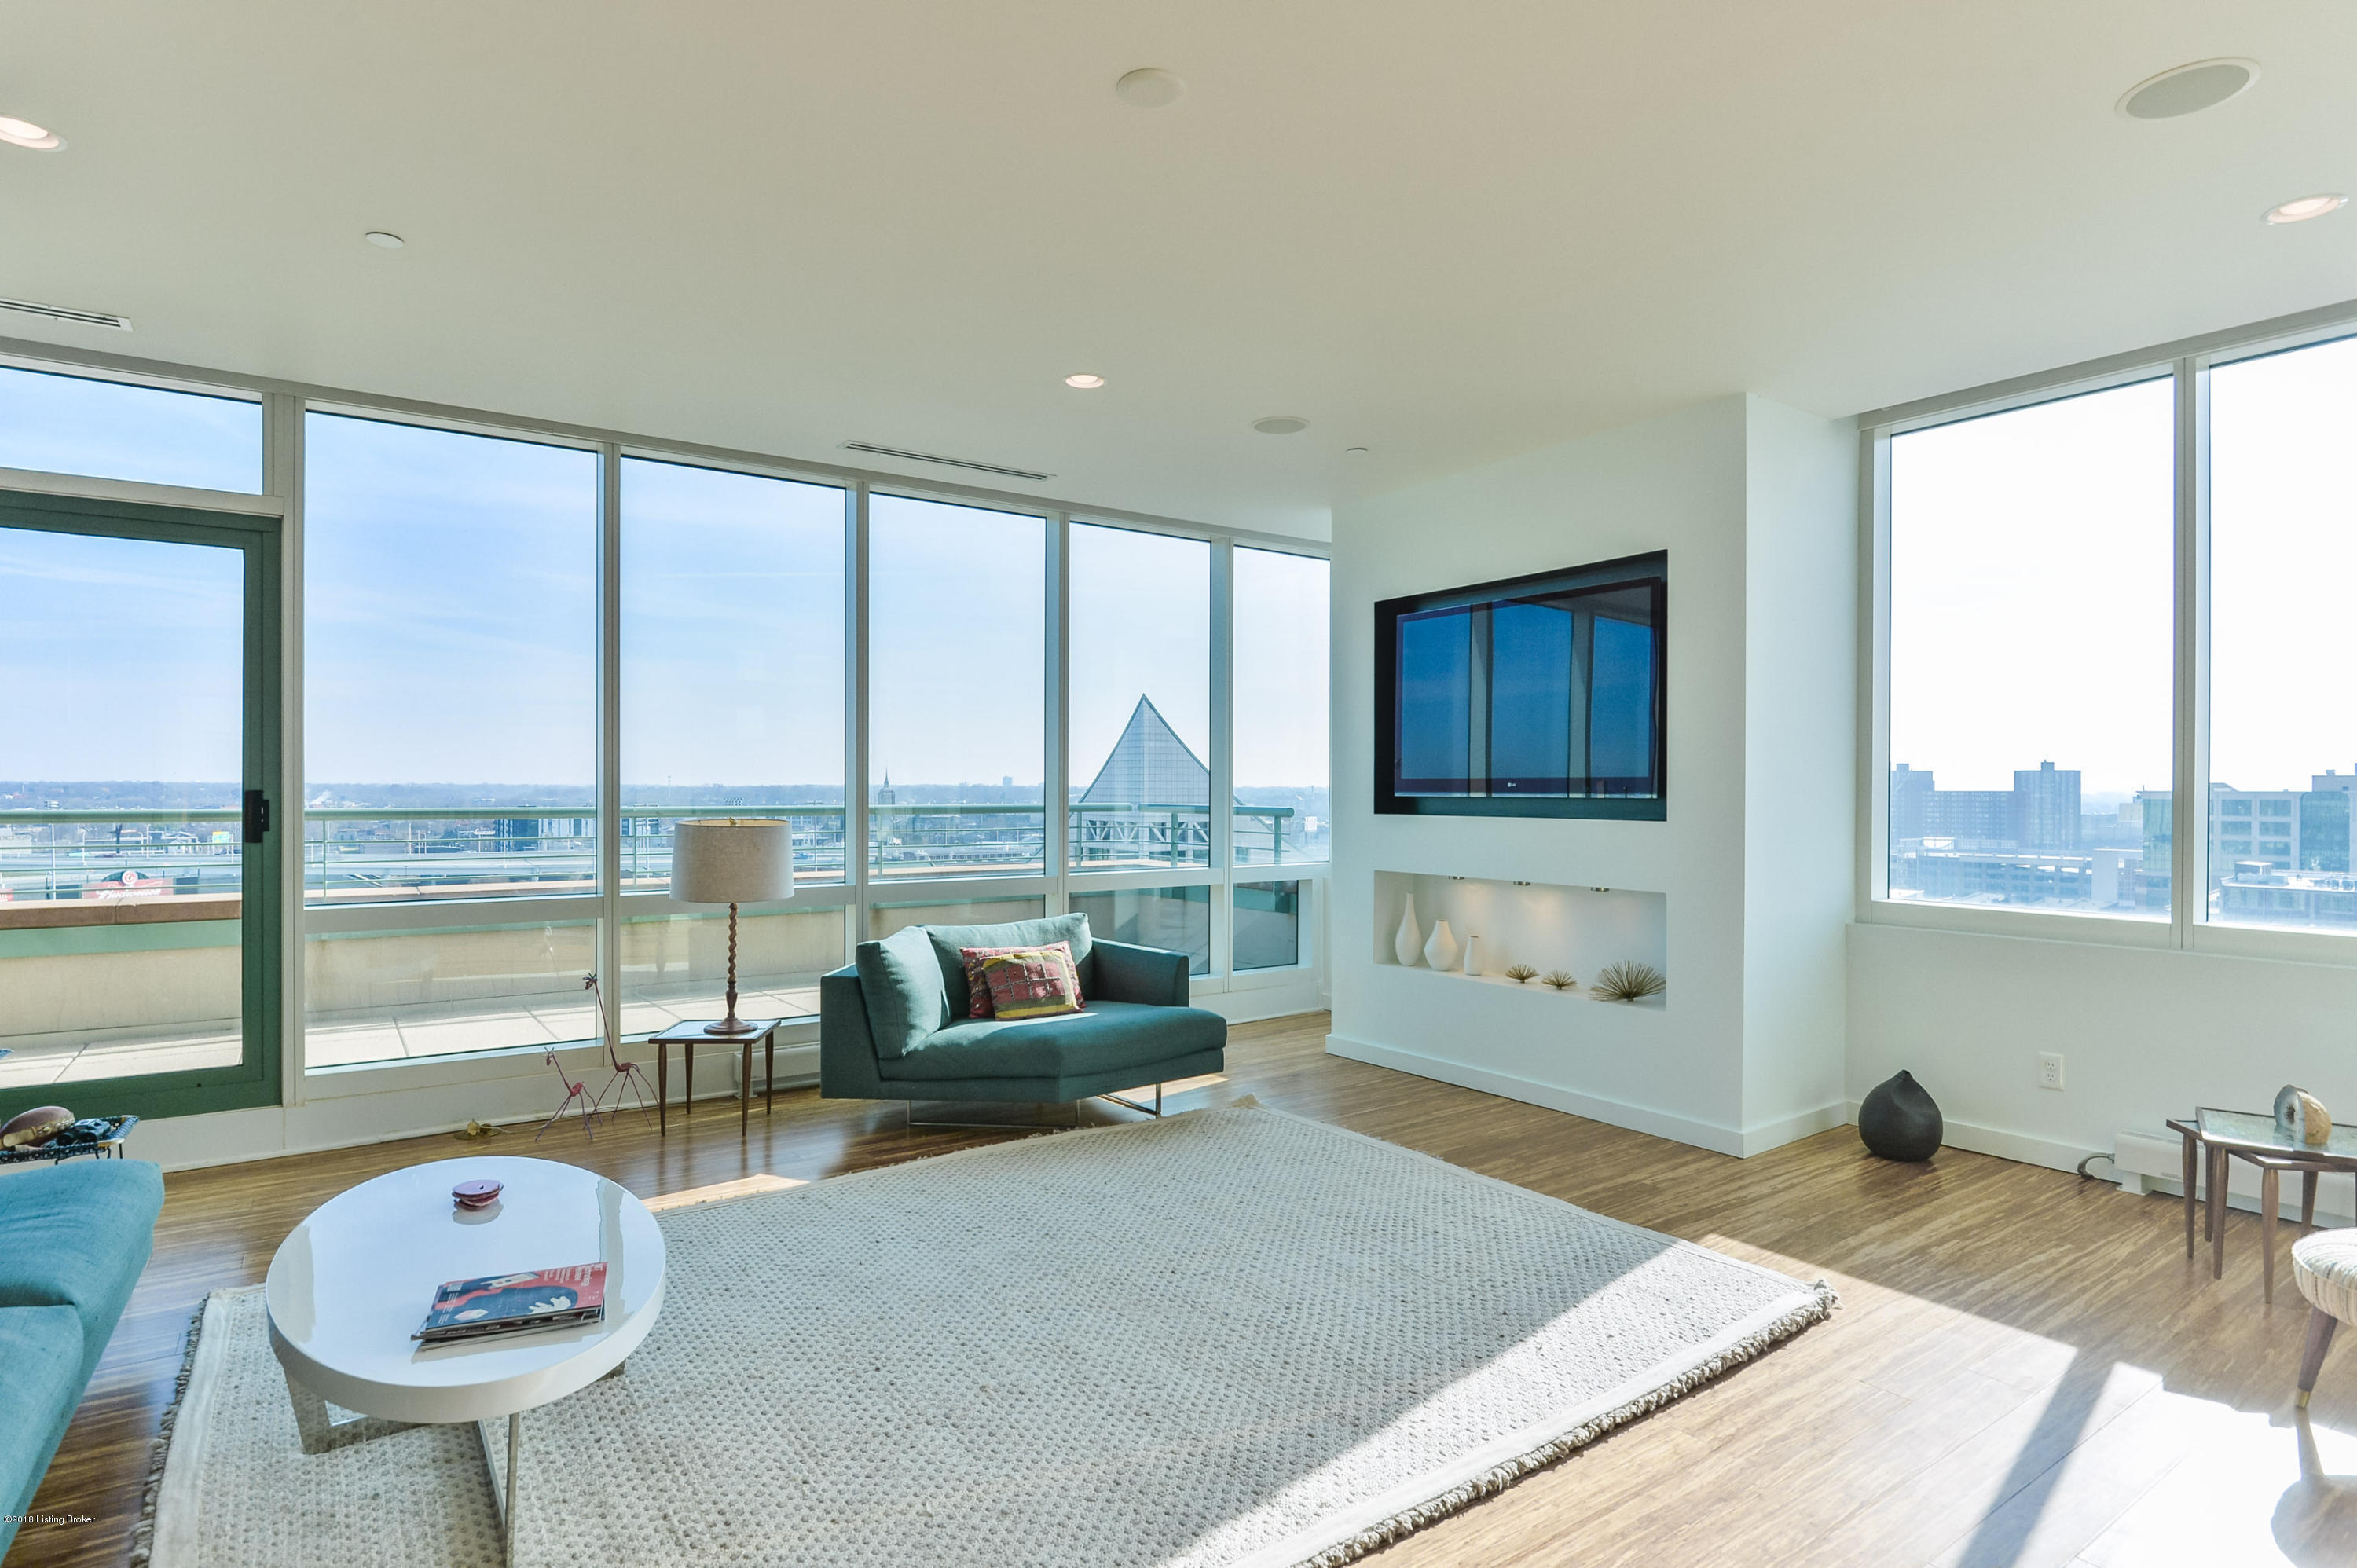 222 E Witherspoon St, Apt 1103